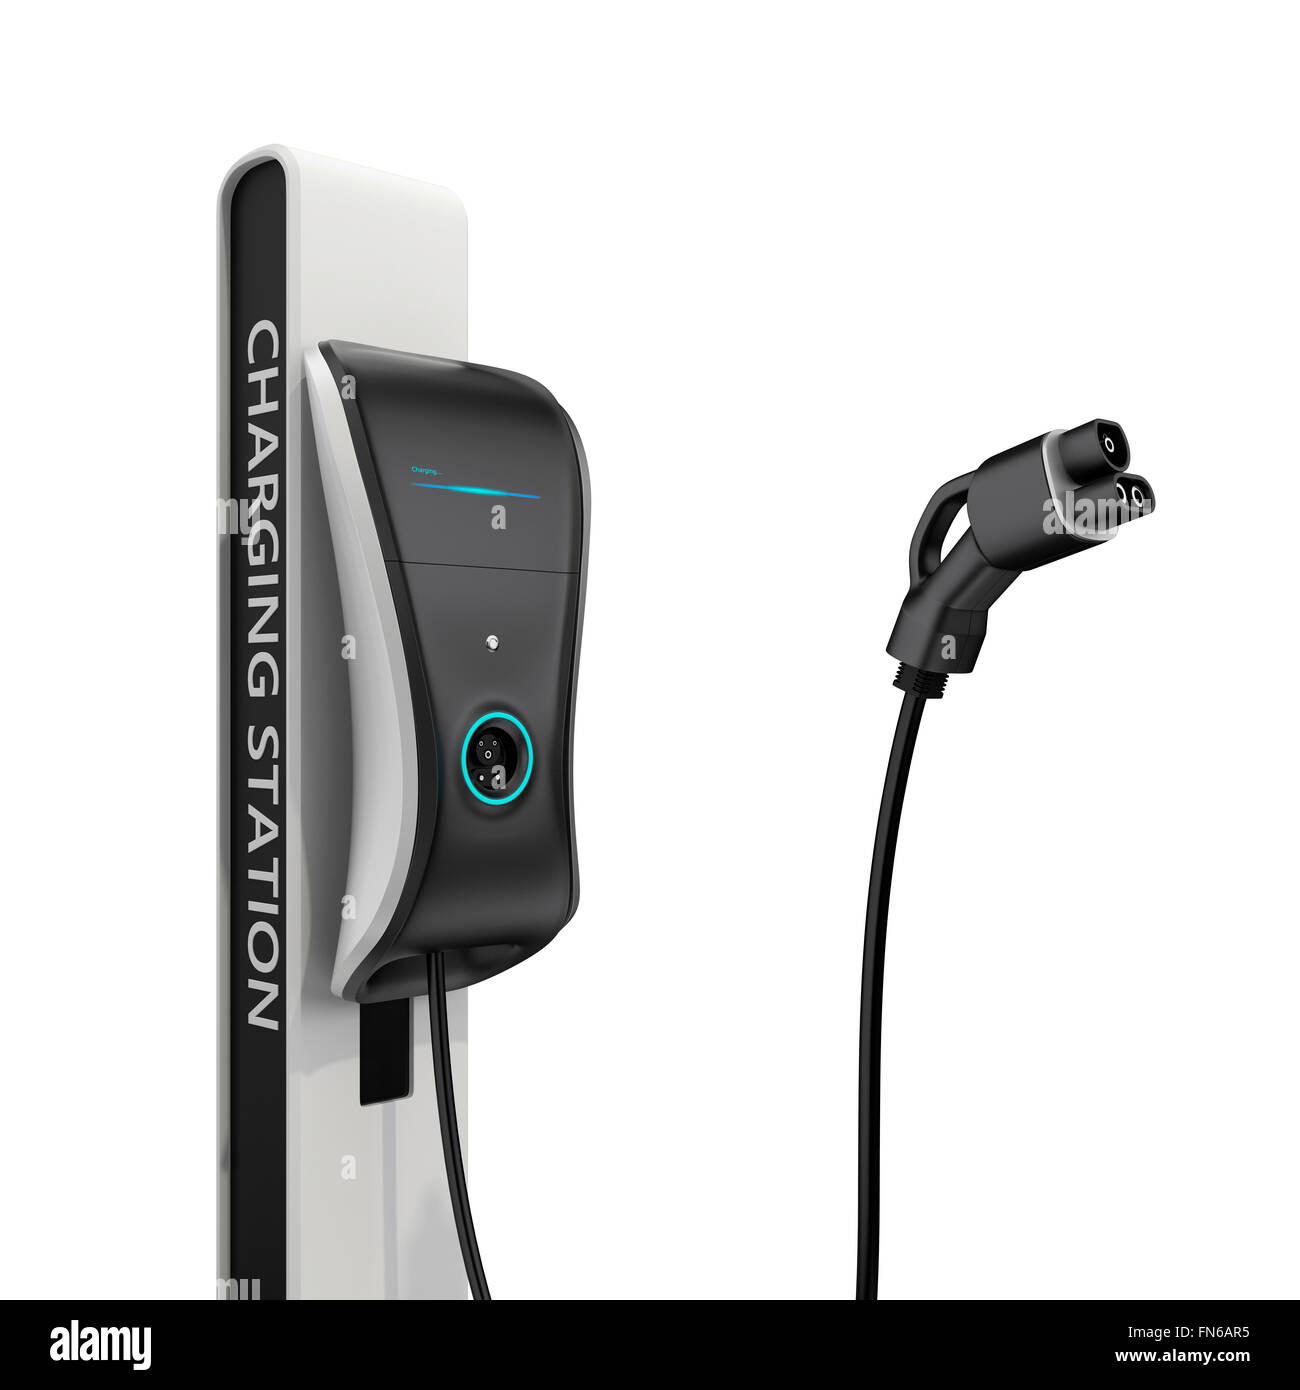 Electric vehicle charging station for public usage. Clipping path available. - Stock Image